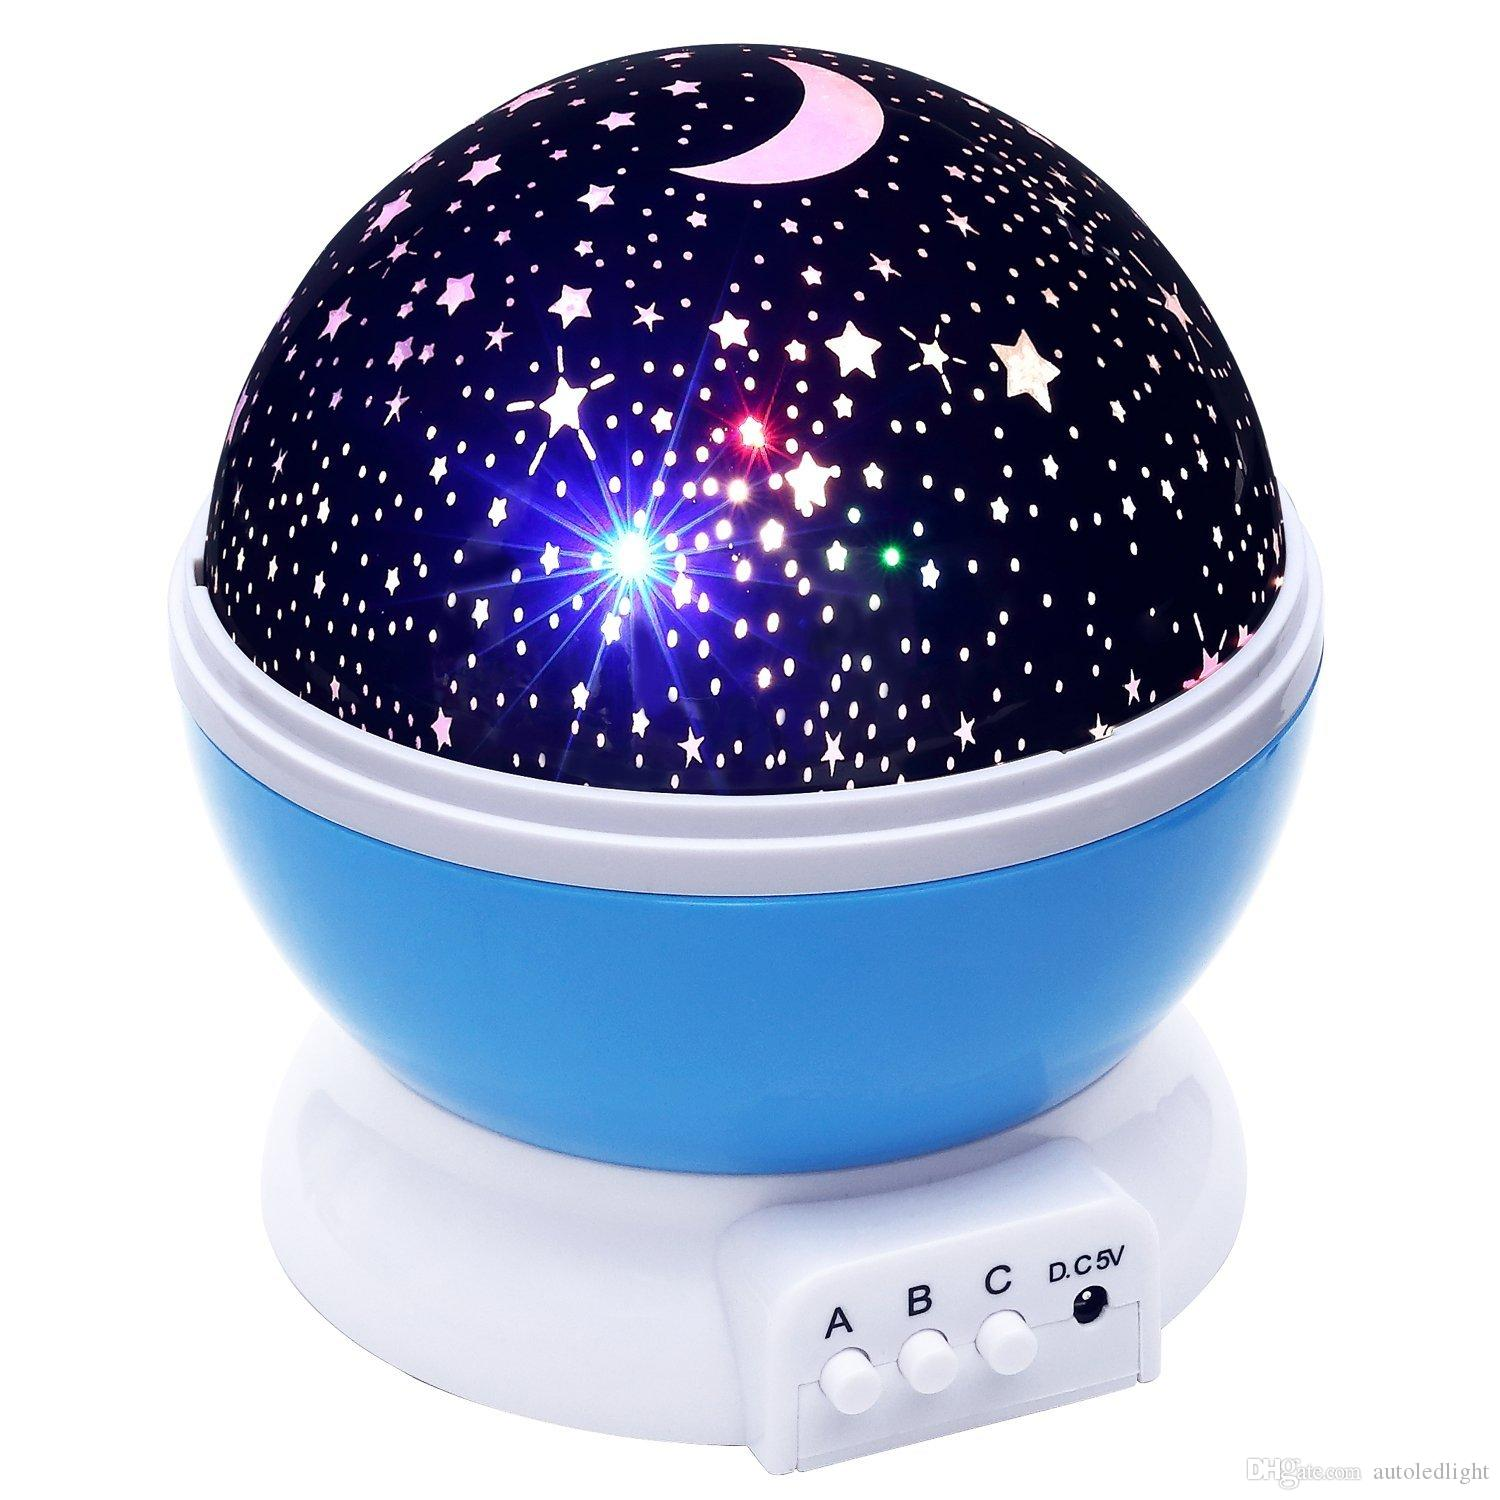 rotating Night Lighting Lamp, starry led Christmas gift for kids, Color Changing Night Lighting Lamp moon Star Projector for Children